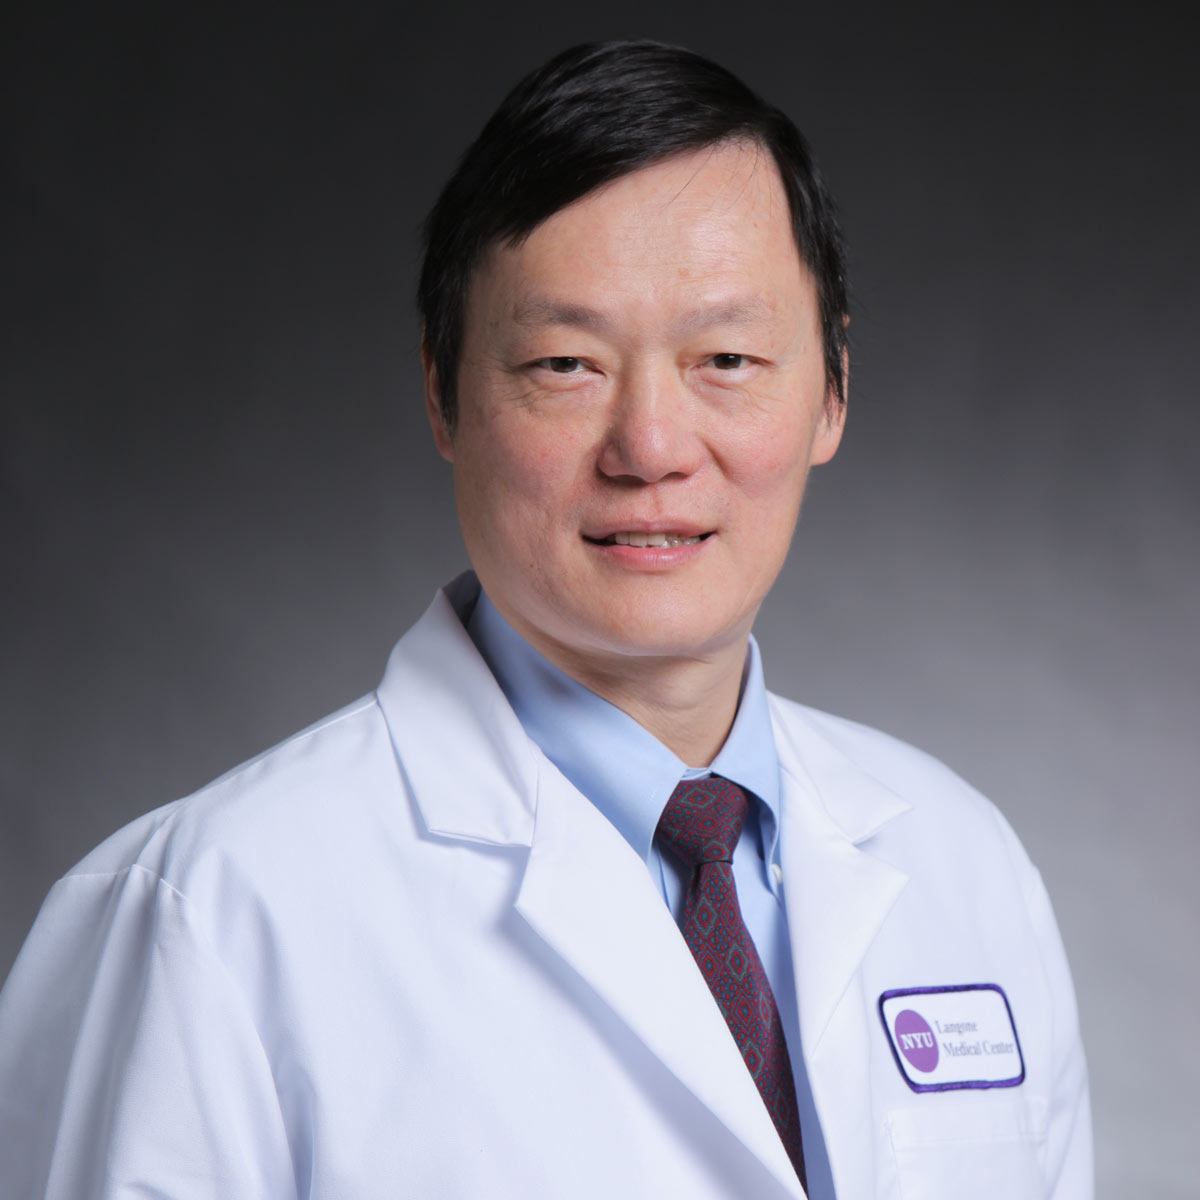 David Liu at [NYU Langone Health]